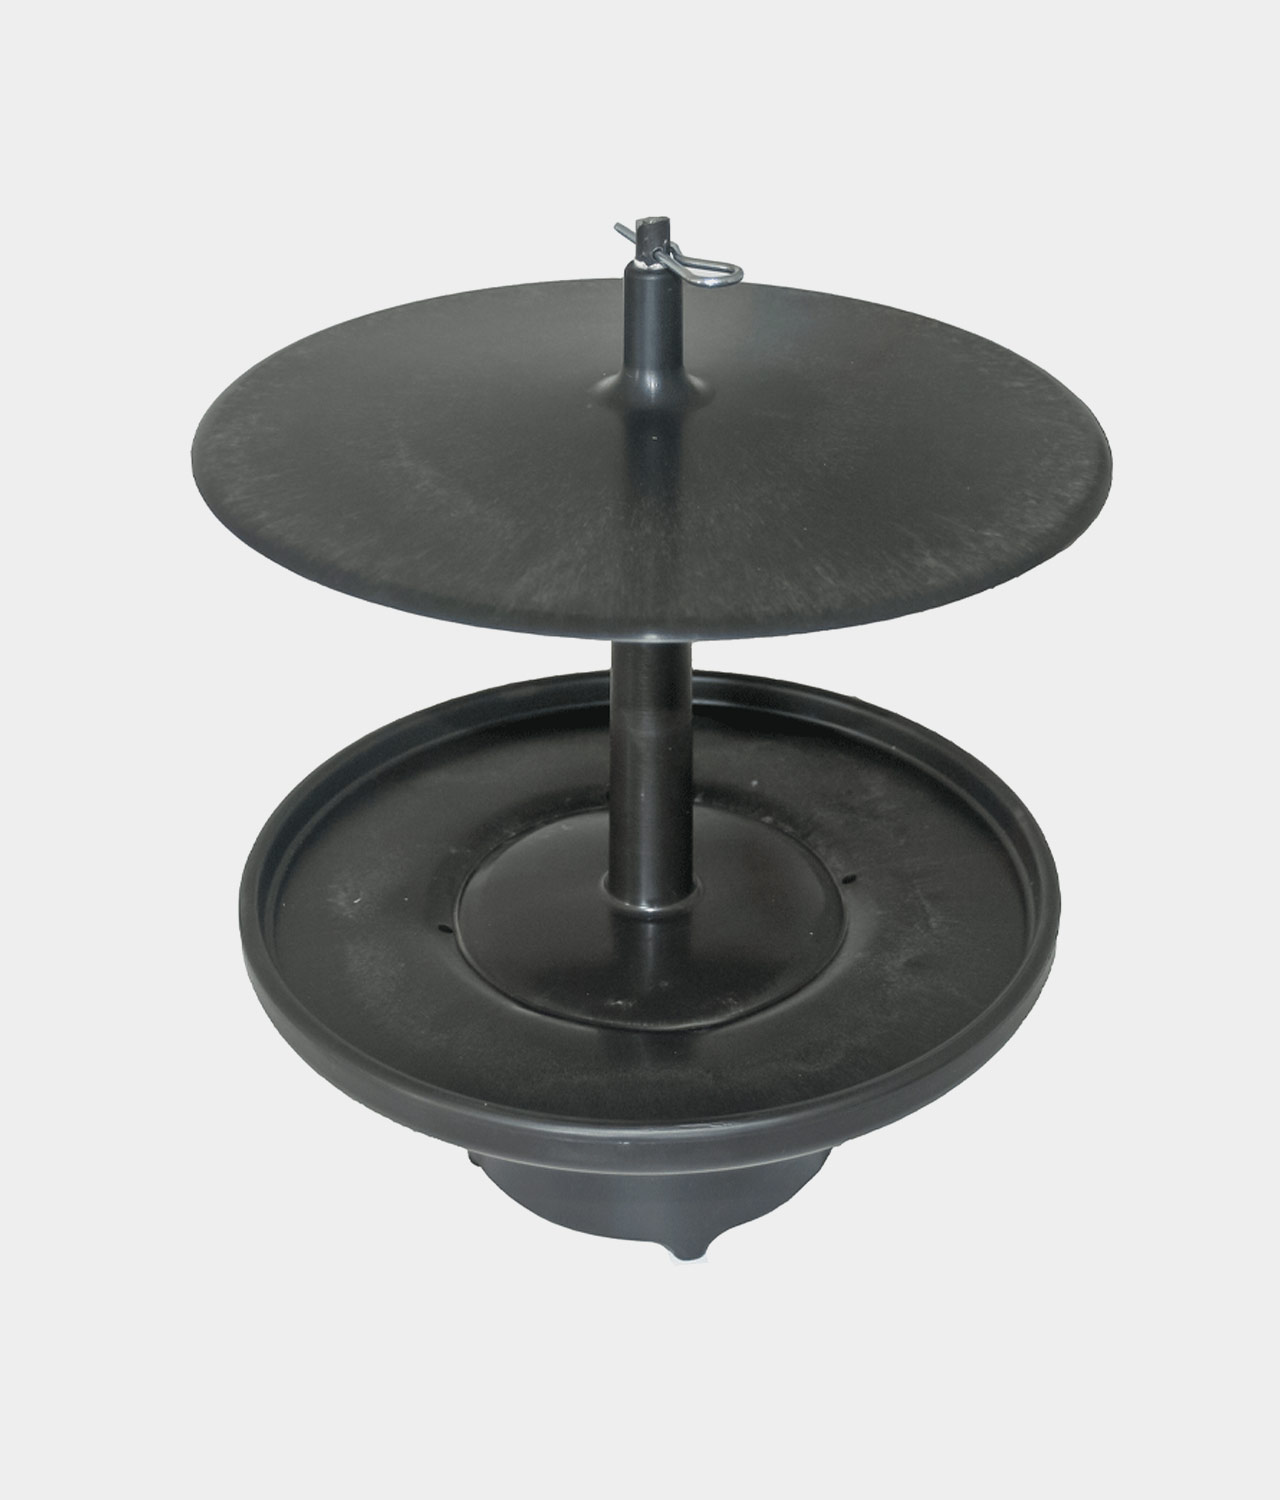 Mineral/Lick Stone Holders